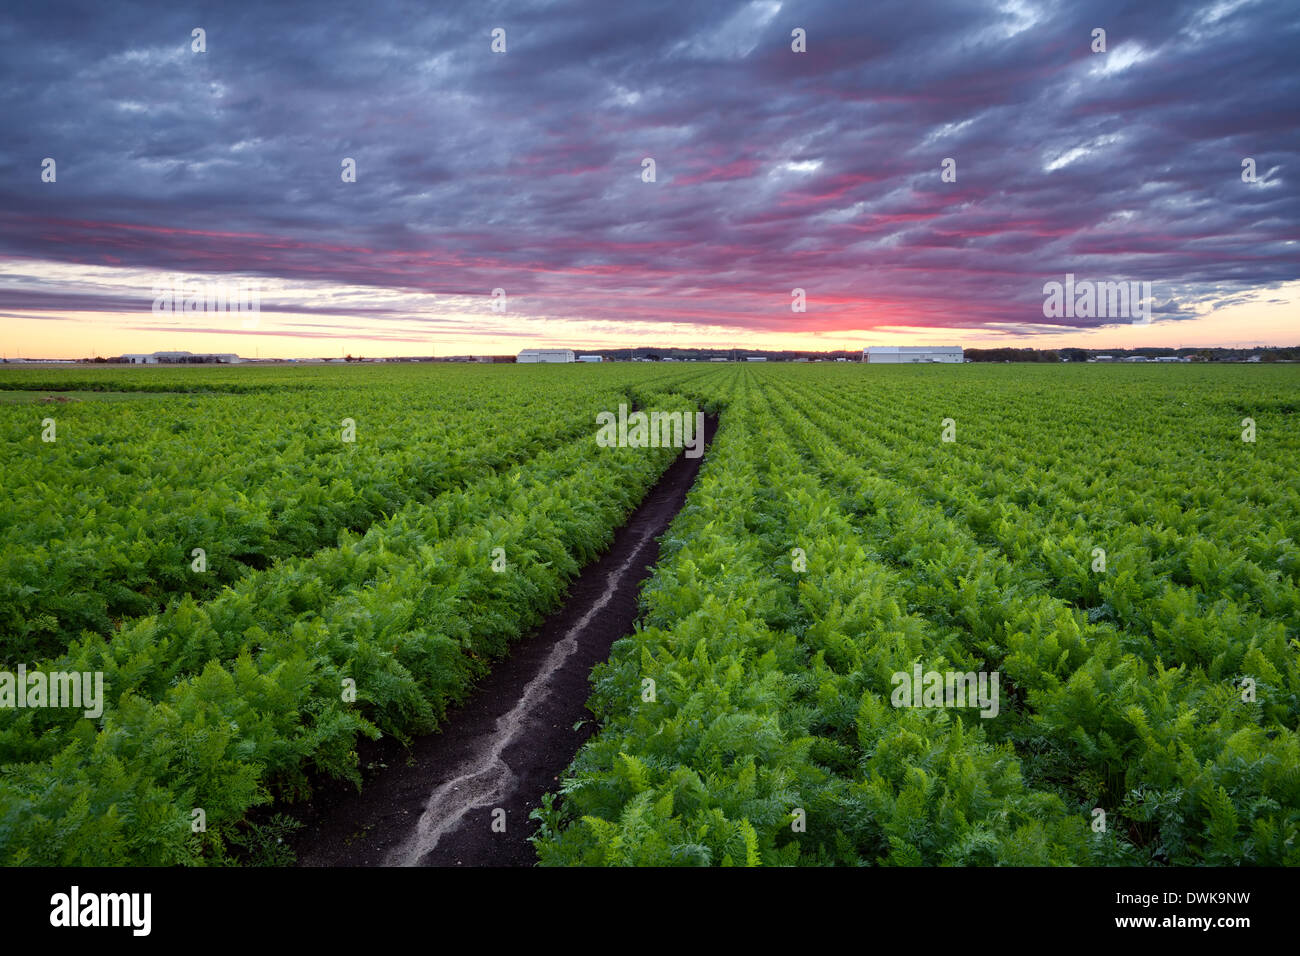 A mature field of carrots in the Holland marsh in Bradford West Gwillimbury, Ontario, Canada. - Stock Image